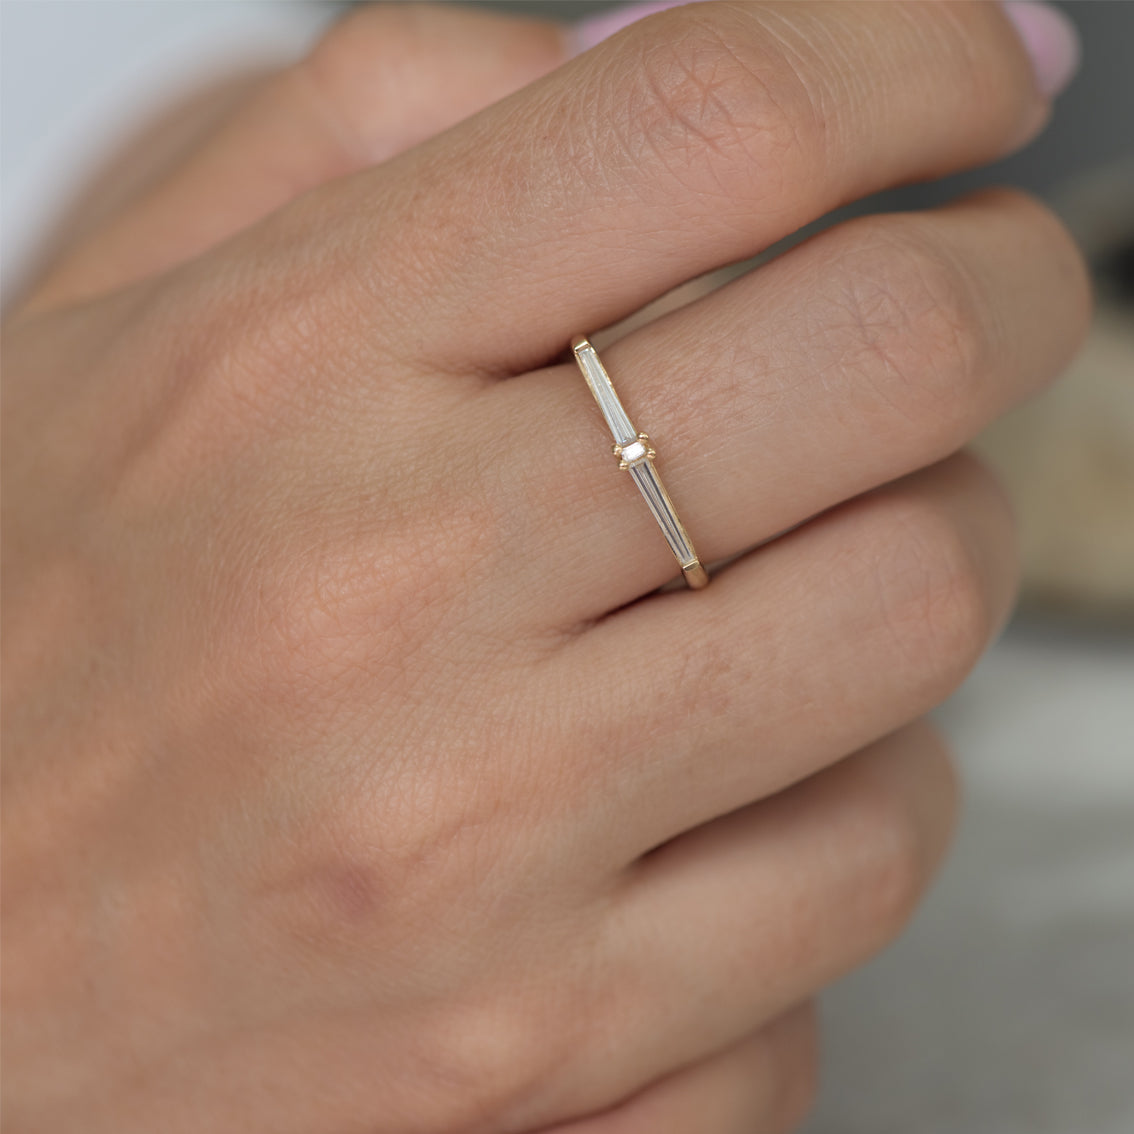 Thin-Tapered-Baguette-Cluster-Ring-Alternative-Wedding-Ring-top-shot